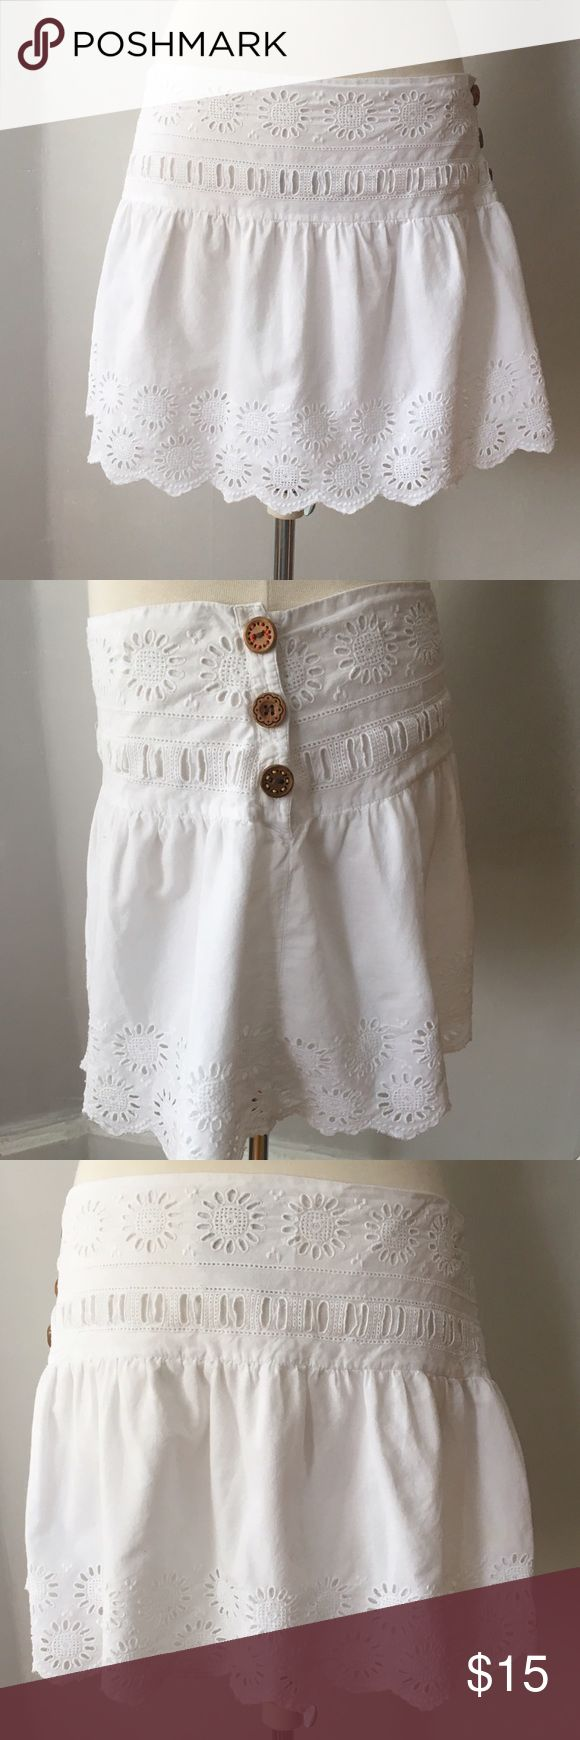 """American Eagle Outfitters  white eyelet skirt American Eagle Outfitter white eyelet skirt!!! Has pretty wooden buttons for side closure. Measurements flat are waist 16"""", hips are 19"""" at bottom of the band. Skirt length is 13"""". American Eagle Outfitters Skirts Mini"""